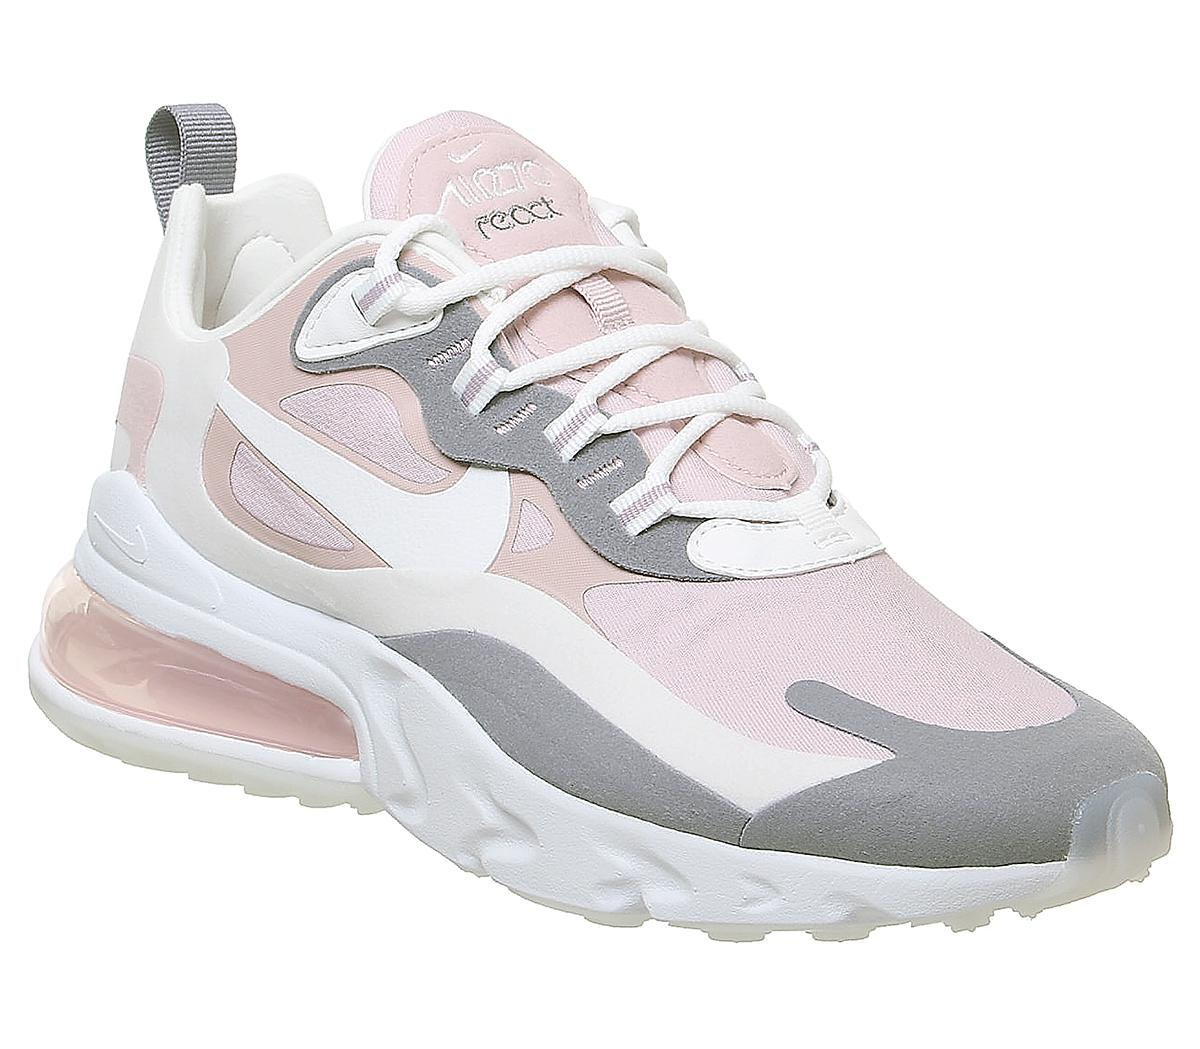 air max 270 react white and pink